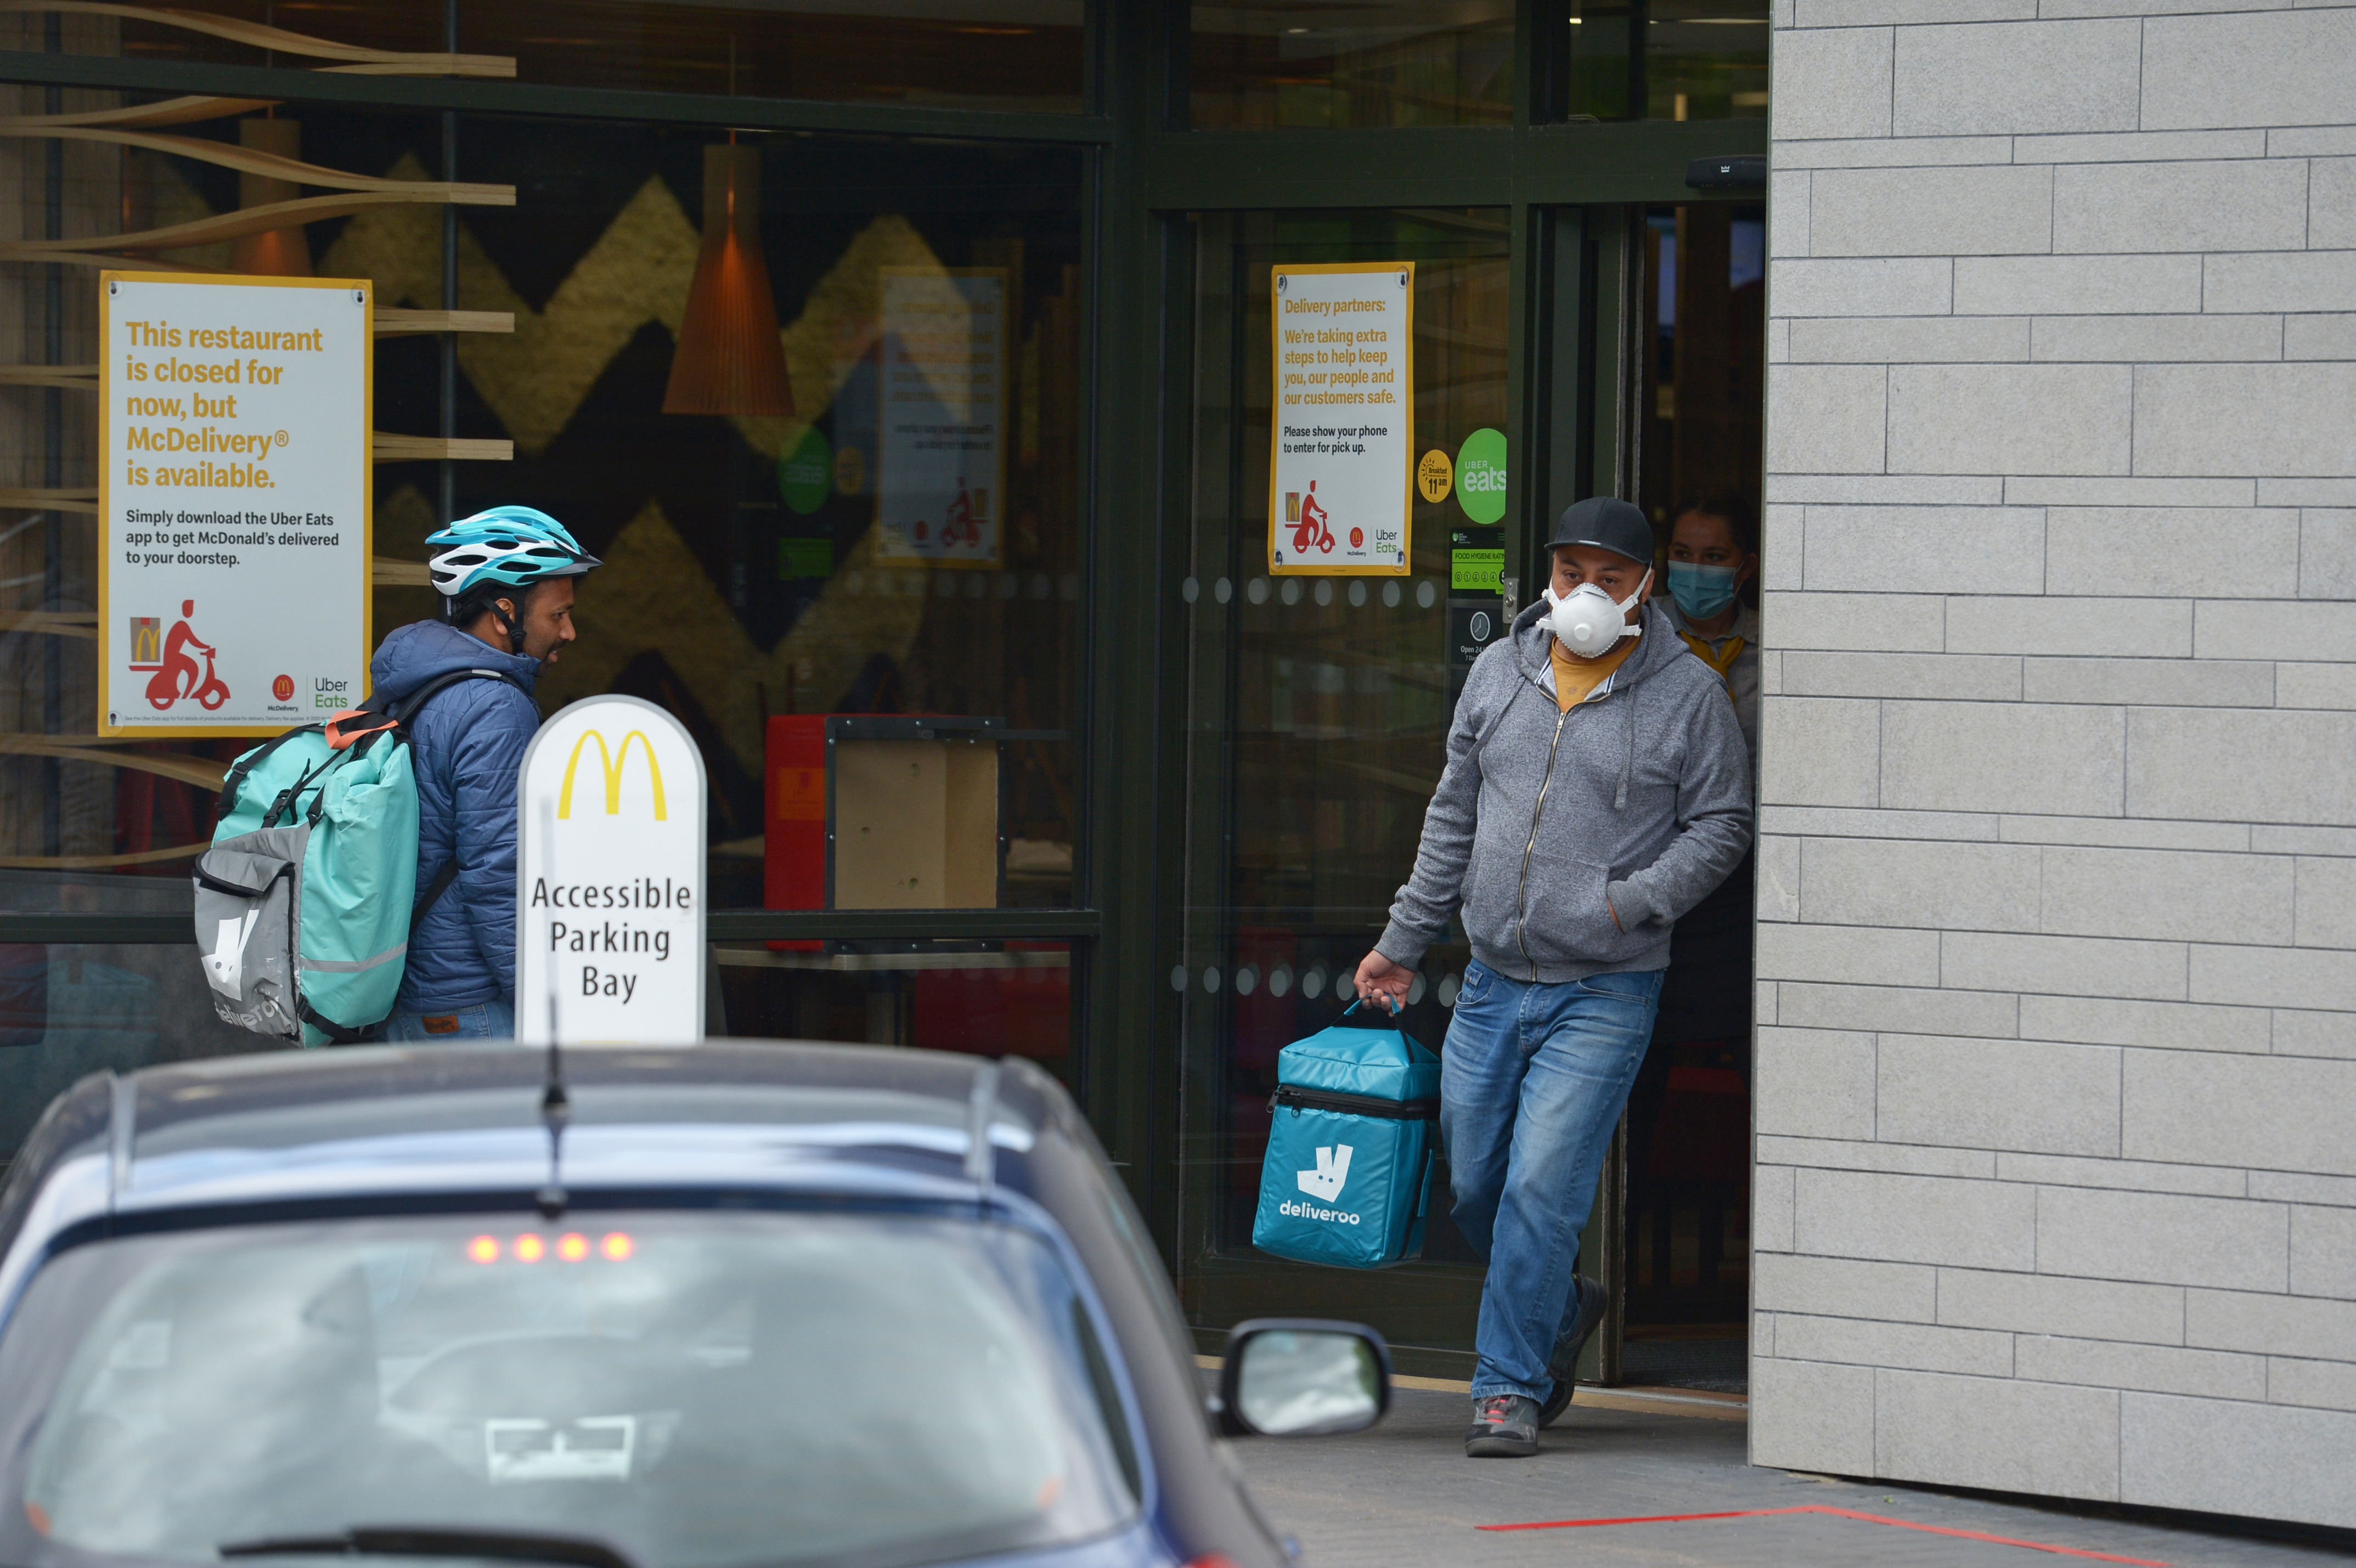 Deliveroo workers at a branch of McDonald's in Boreham, Chelmsford, Essex, one of 15 of the restaurant chain locations to have reopened for takeaway.